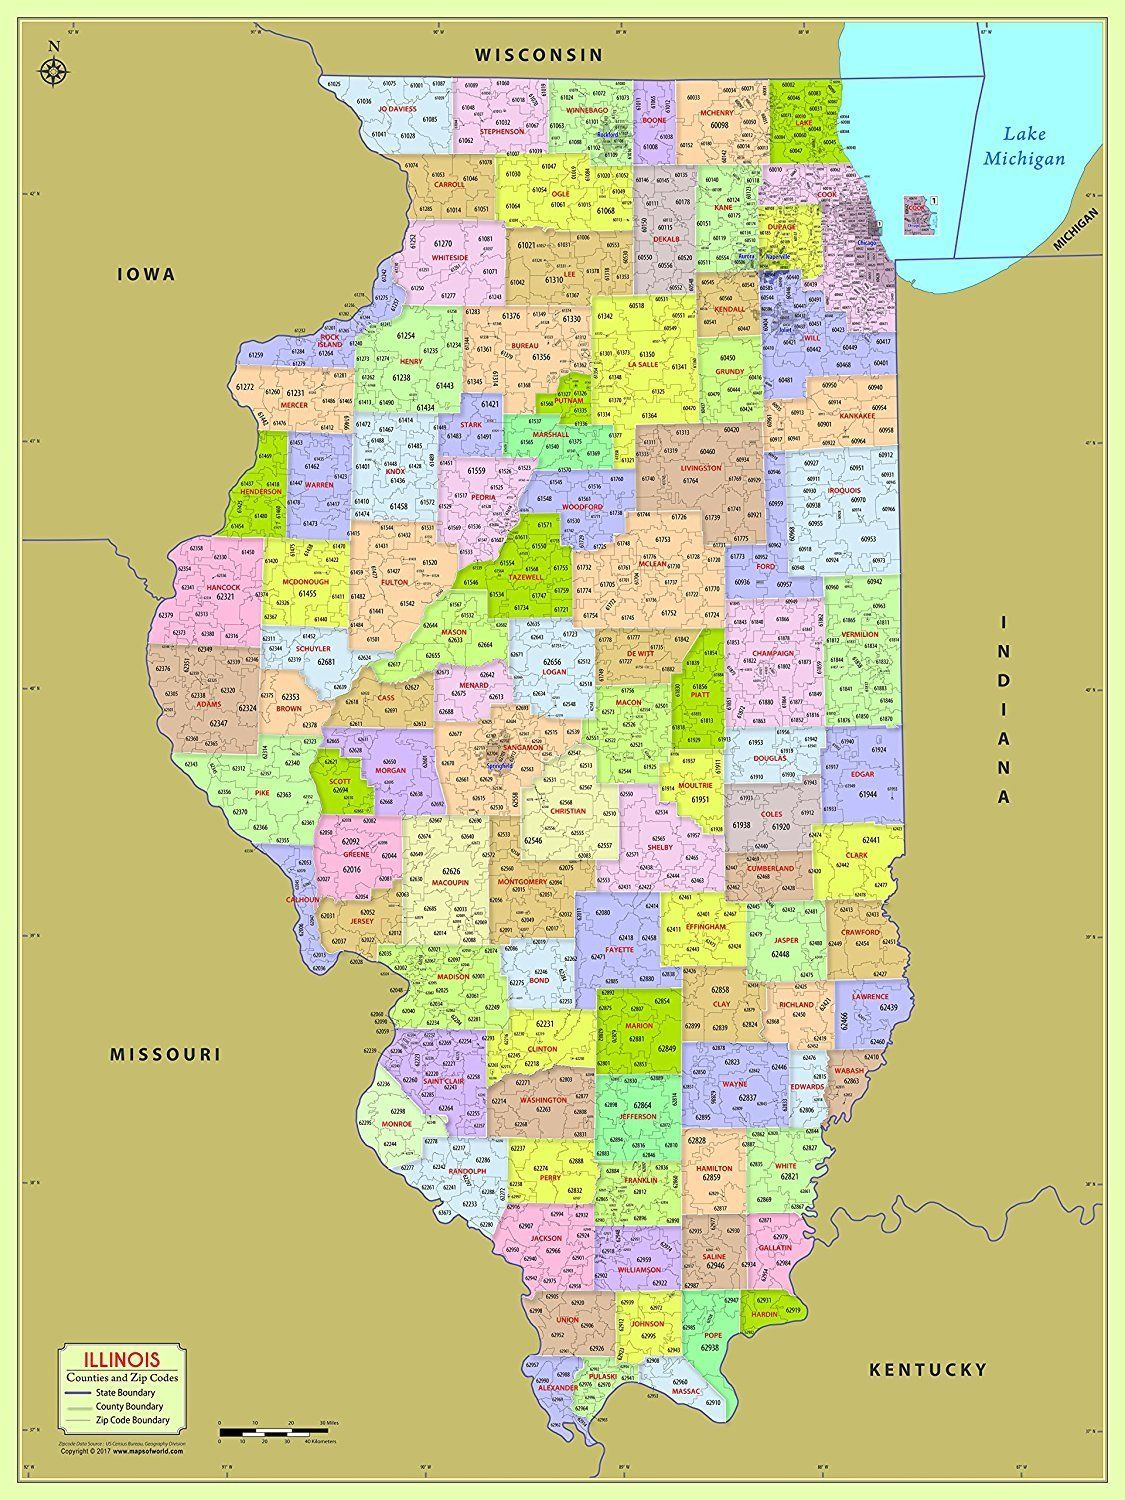 Zip Code Map Illinois MOW AMZ on (With images) | County map, Zip code map, Coding